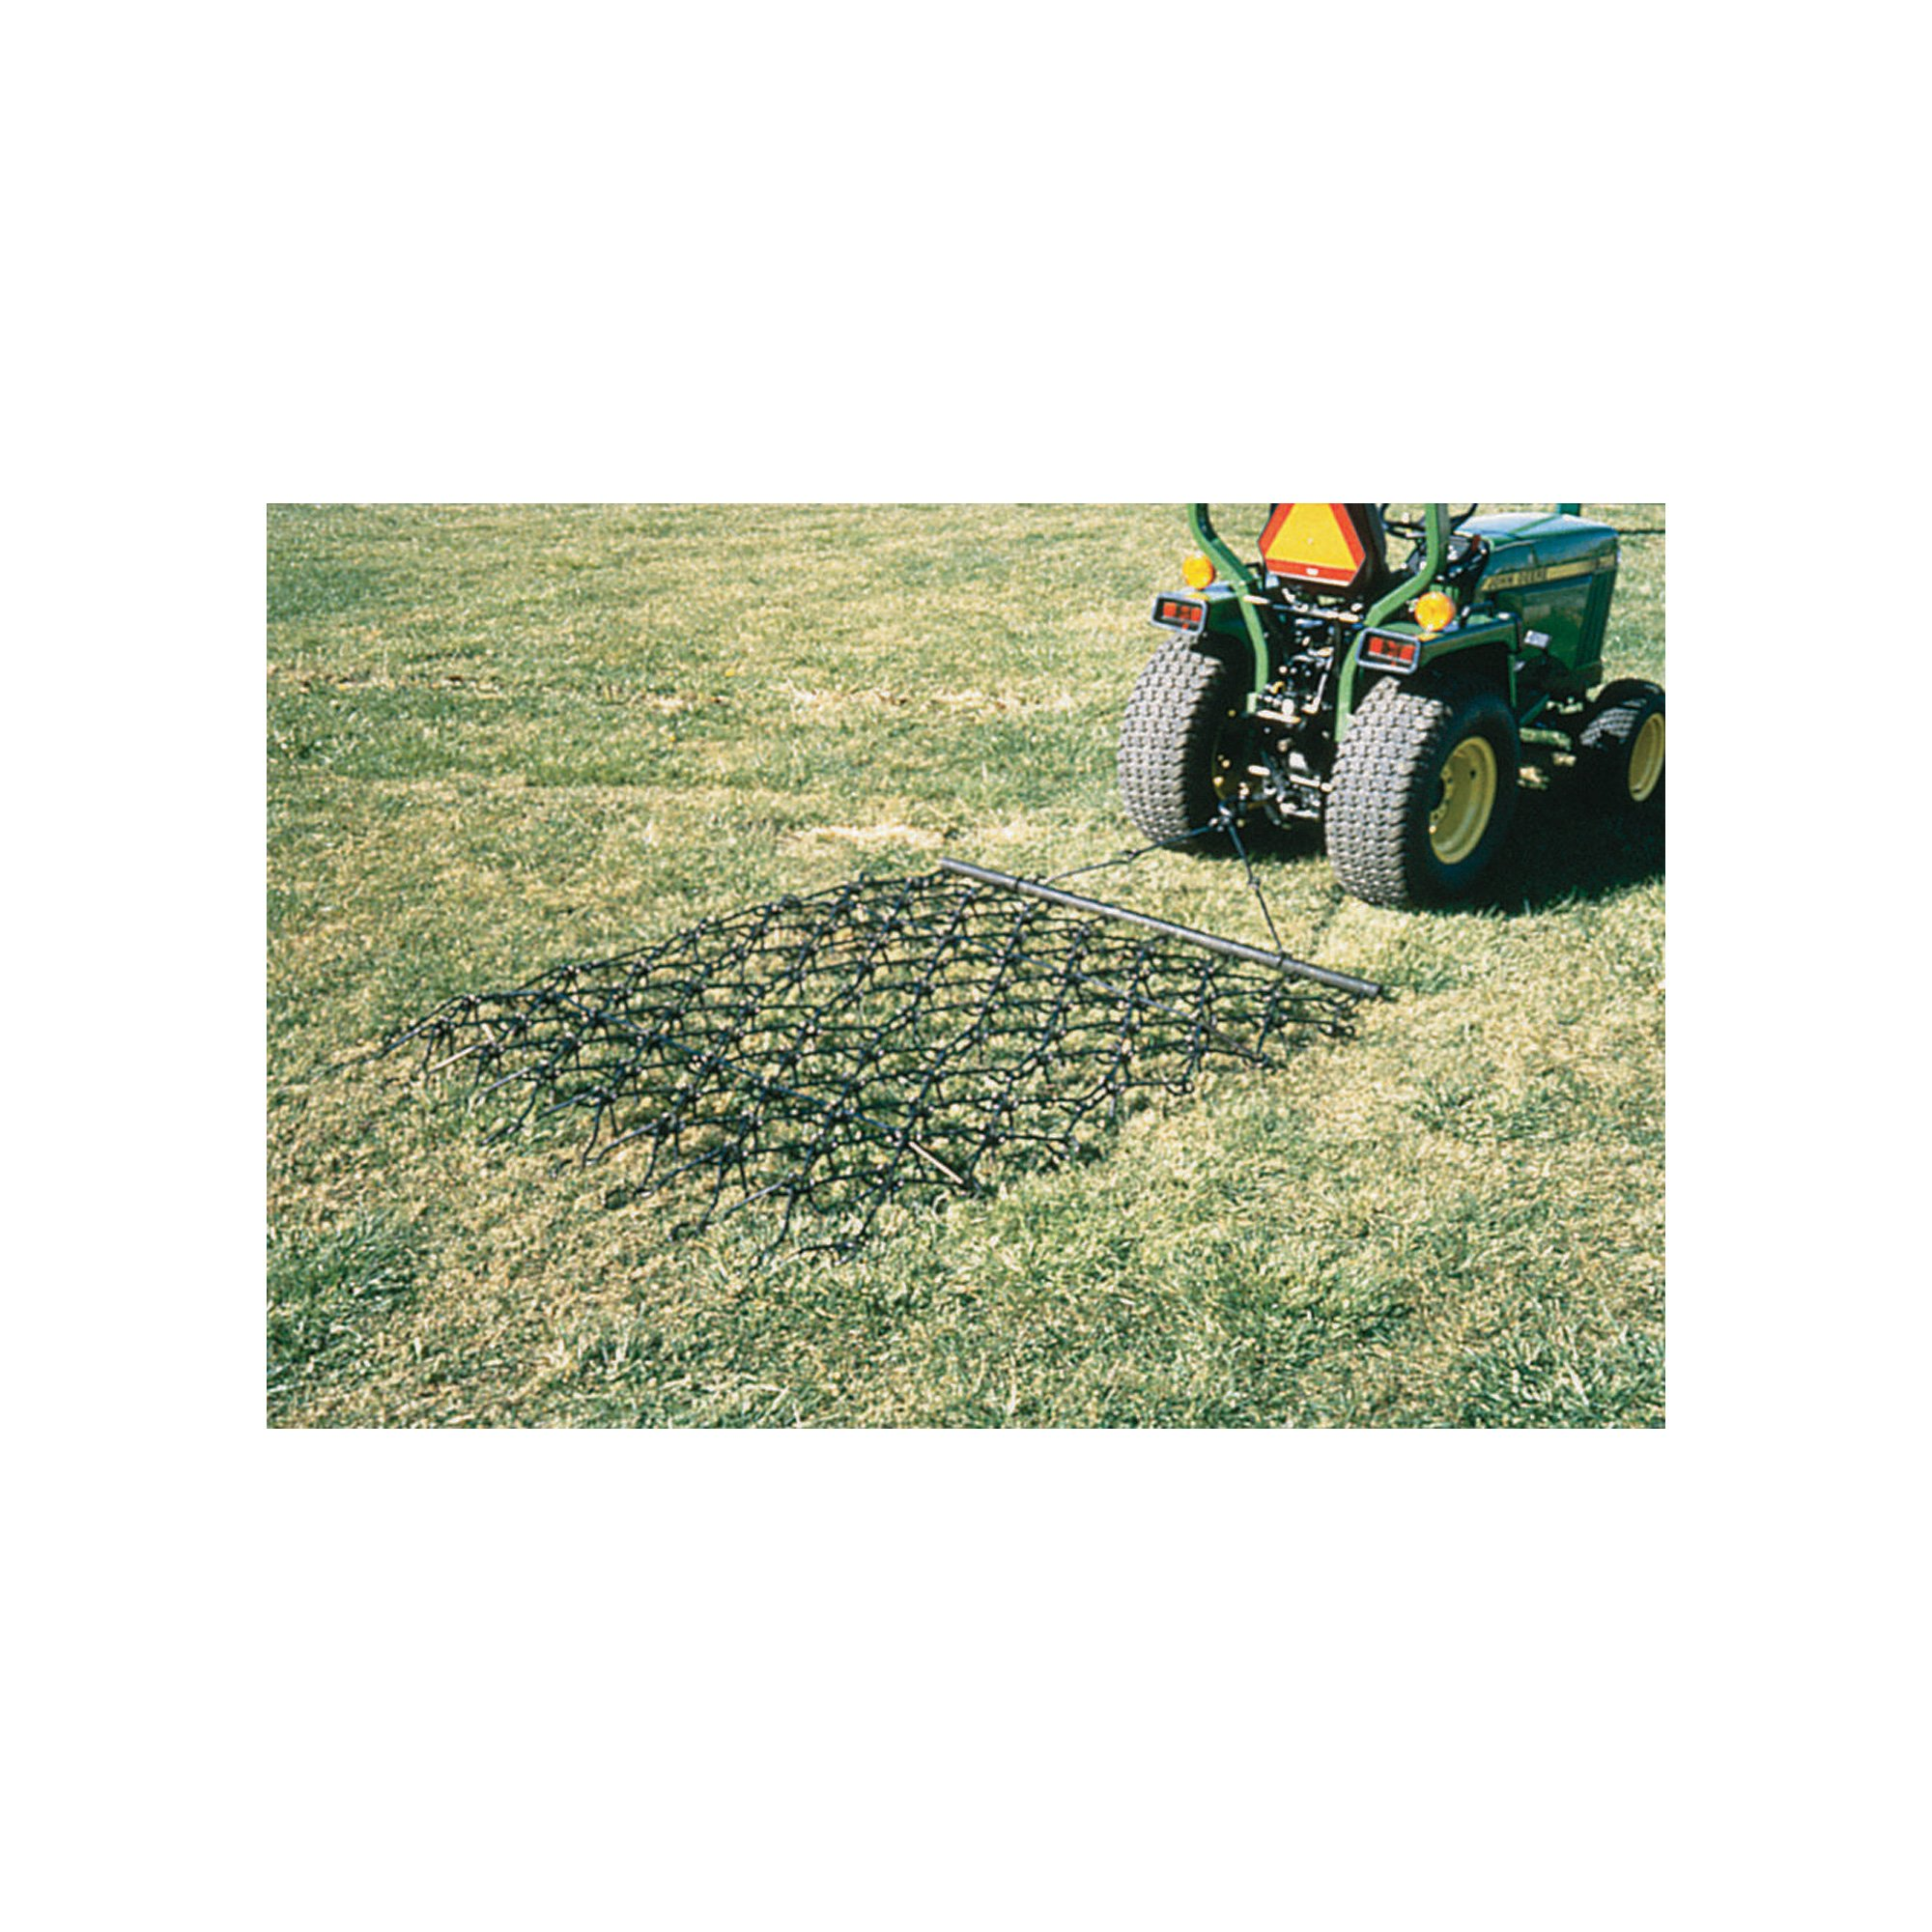 NorTrac Harrow Rake for Cleaning, Leveling Soil and Stimulating Growth - 4 1/2ft.W x 5 1/2ft.L